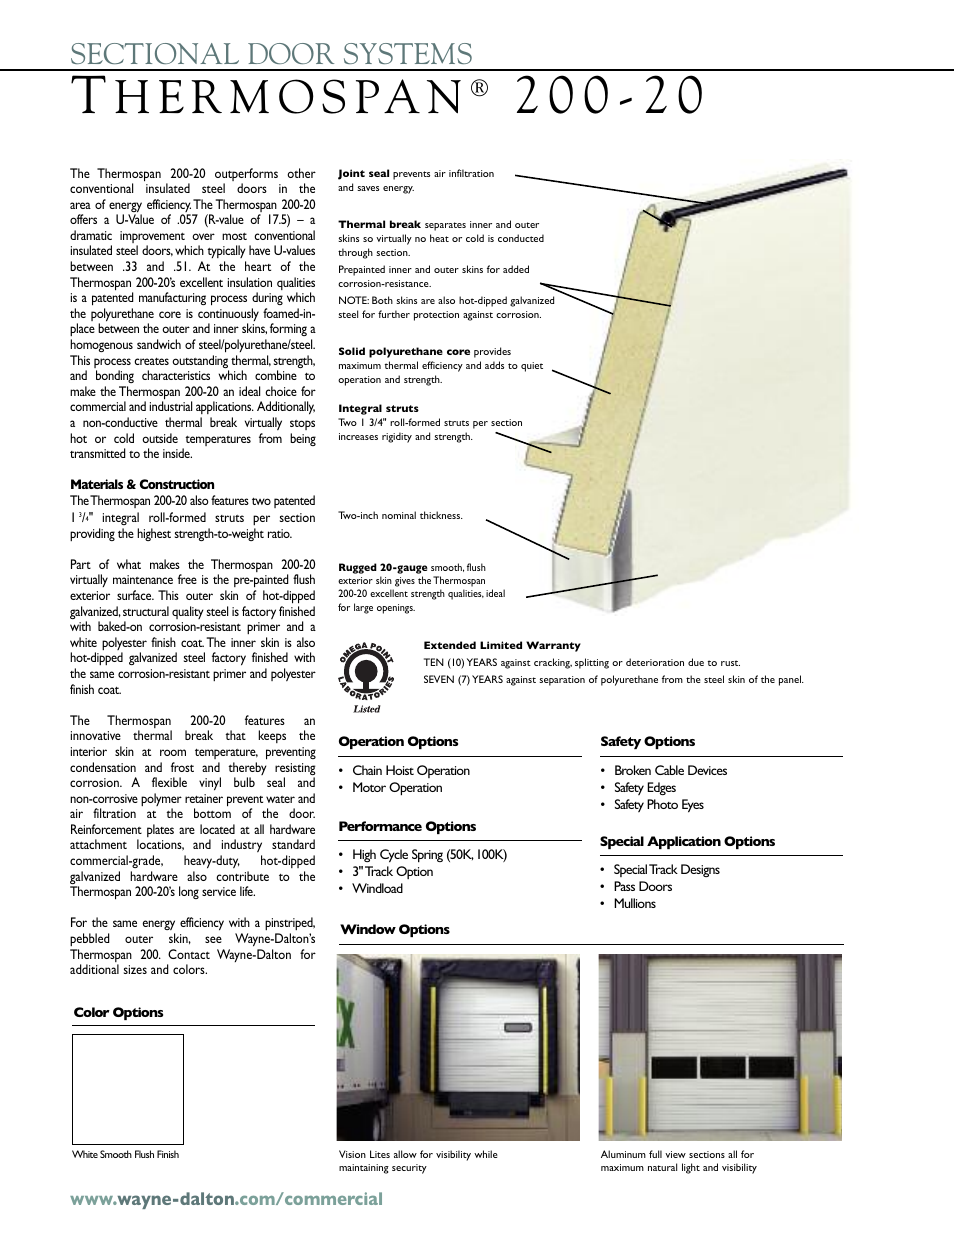 Wayne-Dalton THERMOSPAN 200-20 User Manual | Page 2 / 4